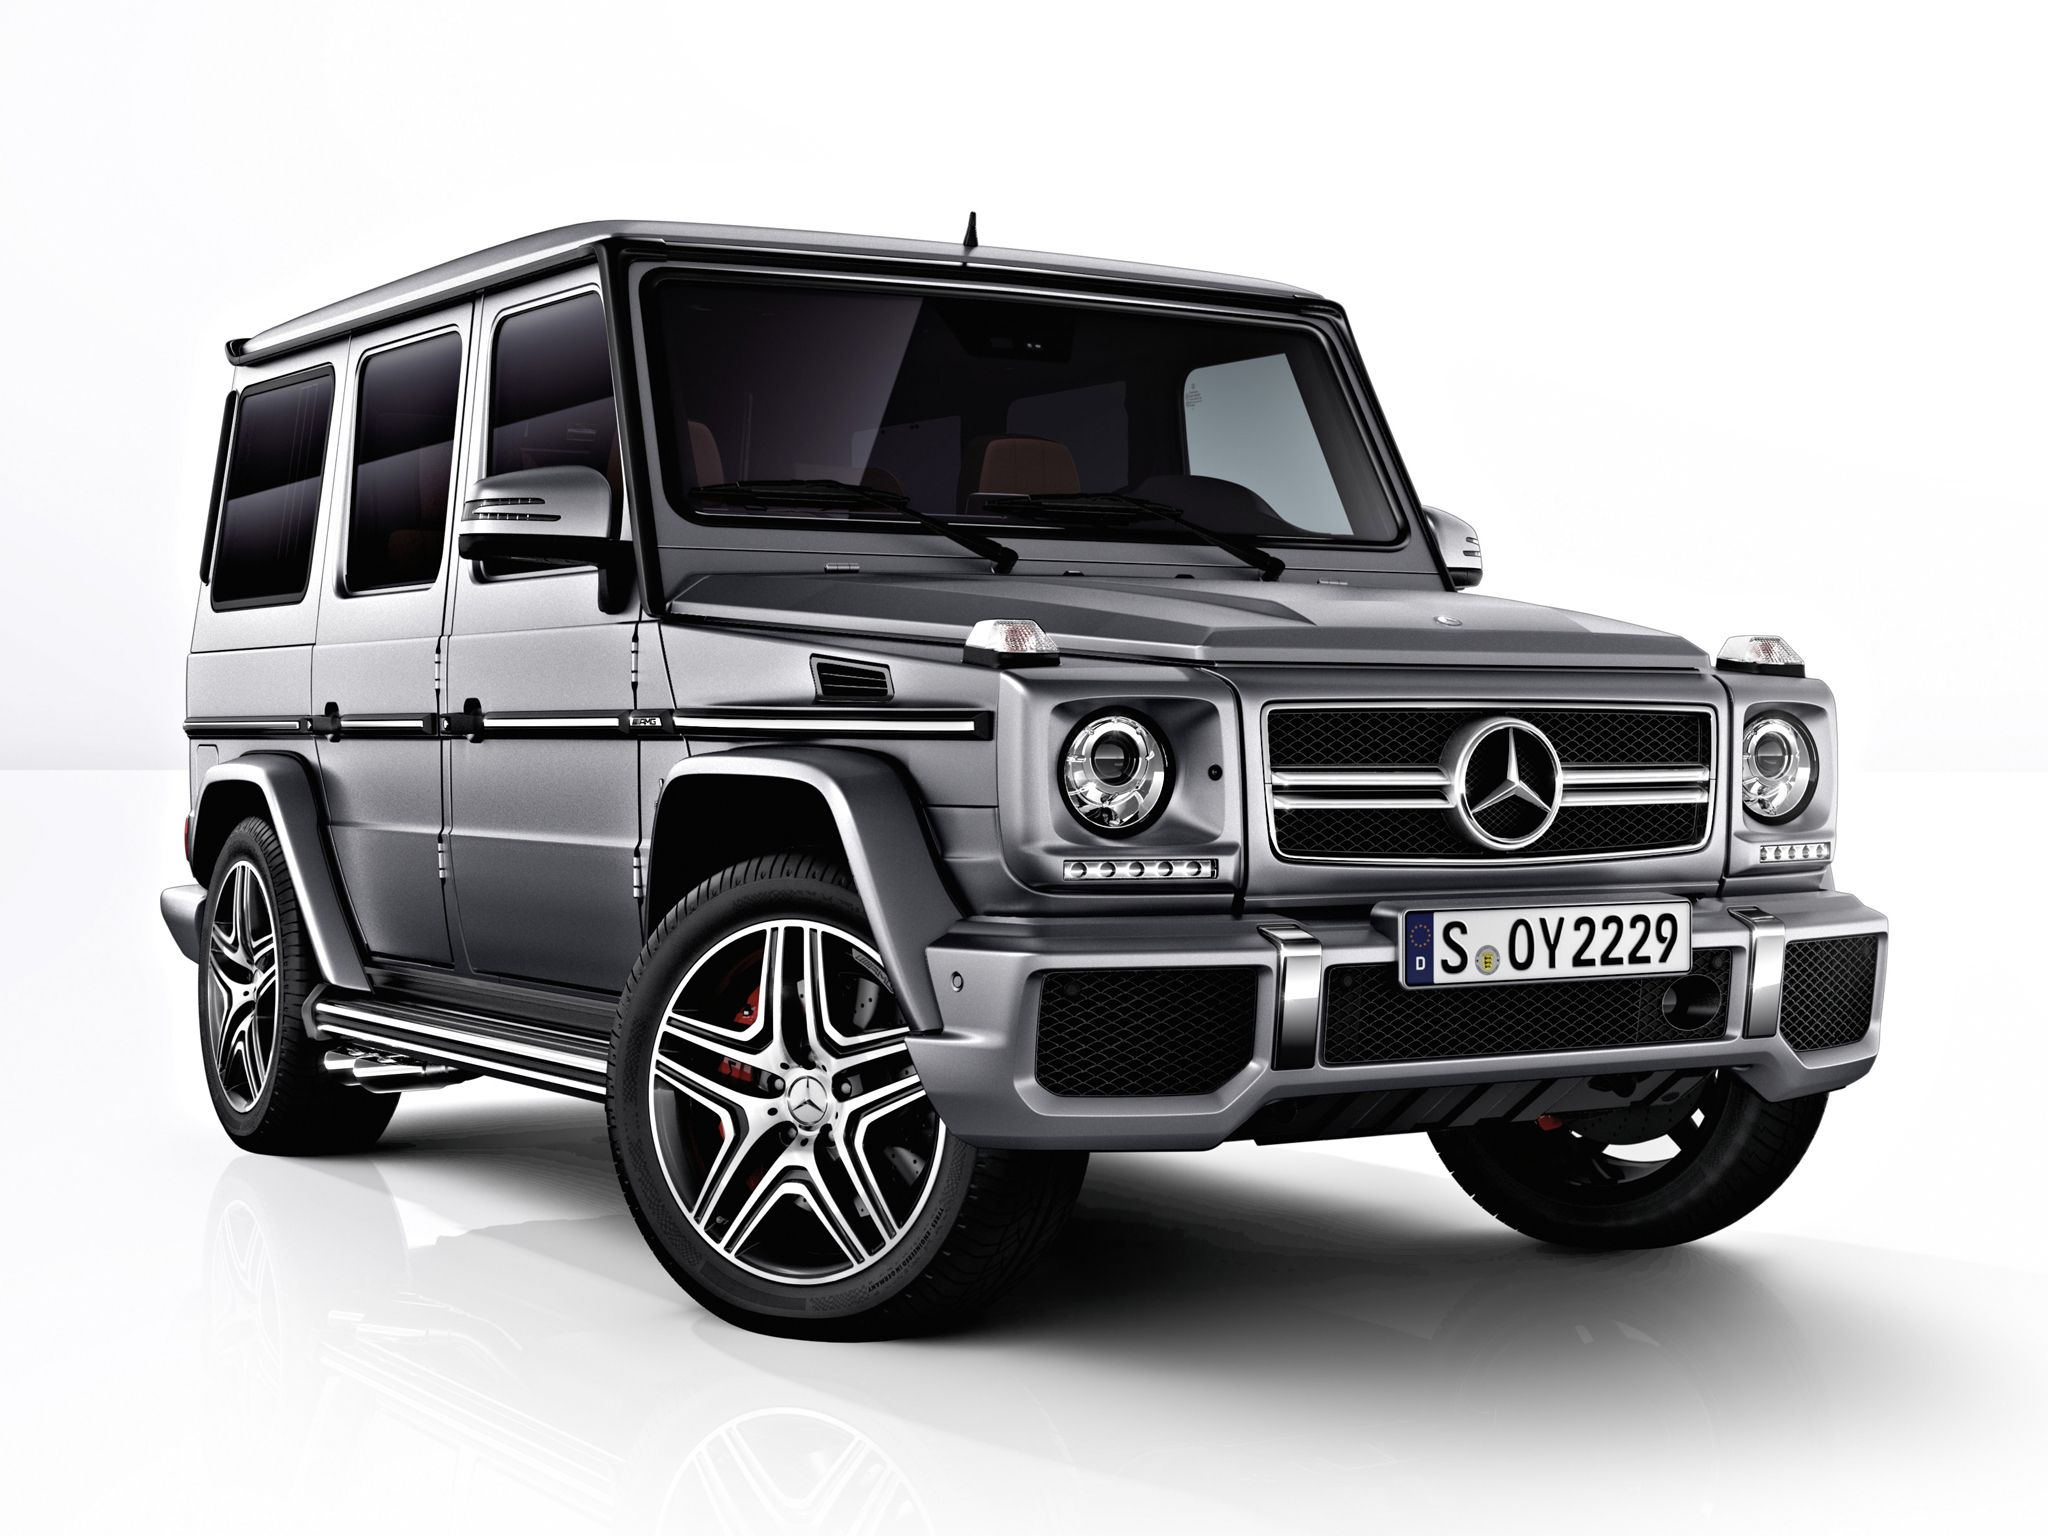 Mercedes benz g63 amg suv starting at 134 300 usd for Mercedes benz g wagon g63